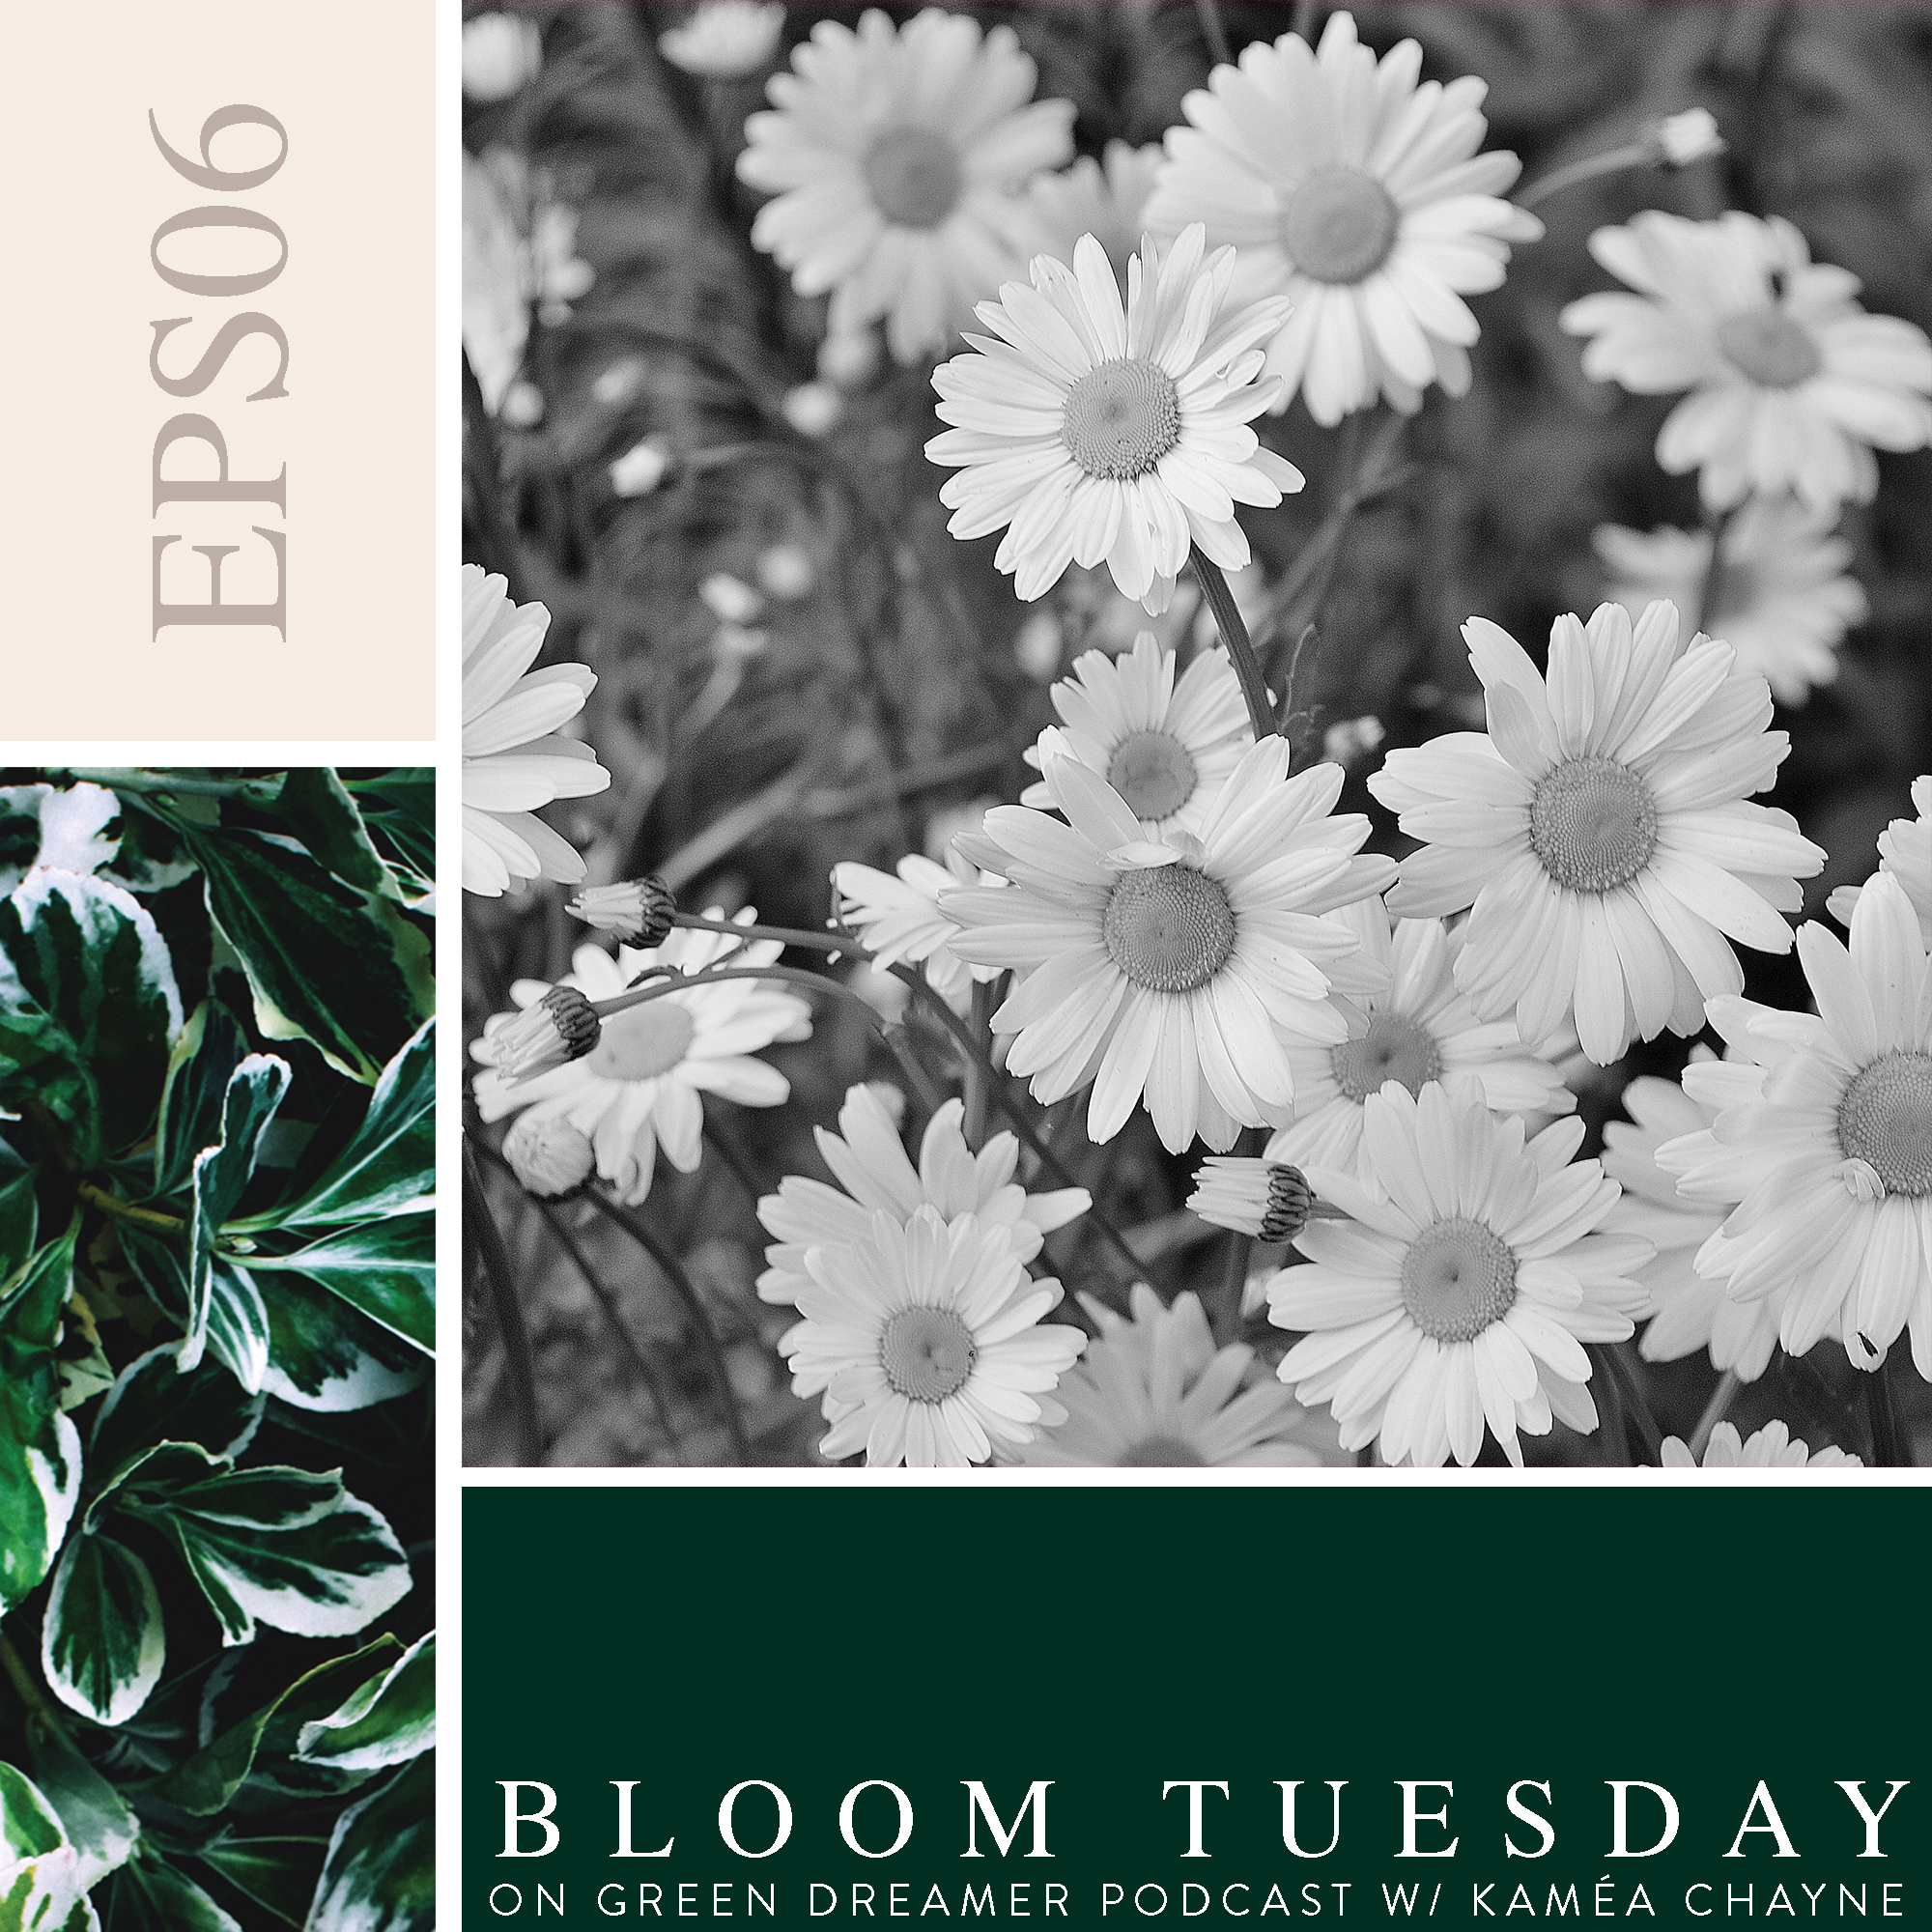 06) BLOOM TUESDAY